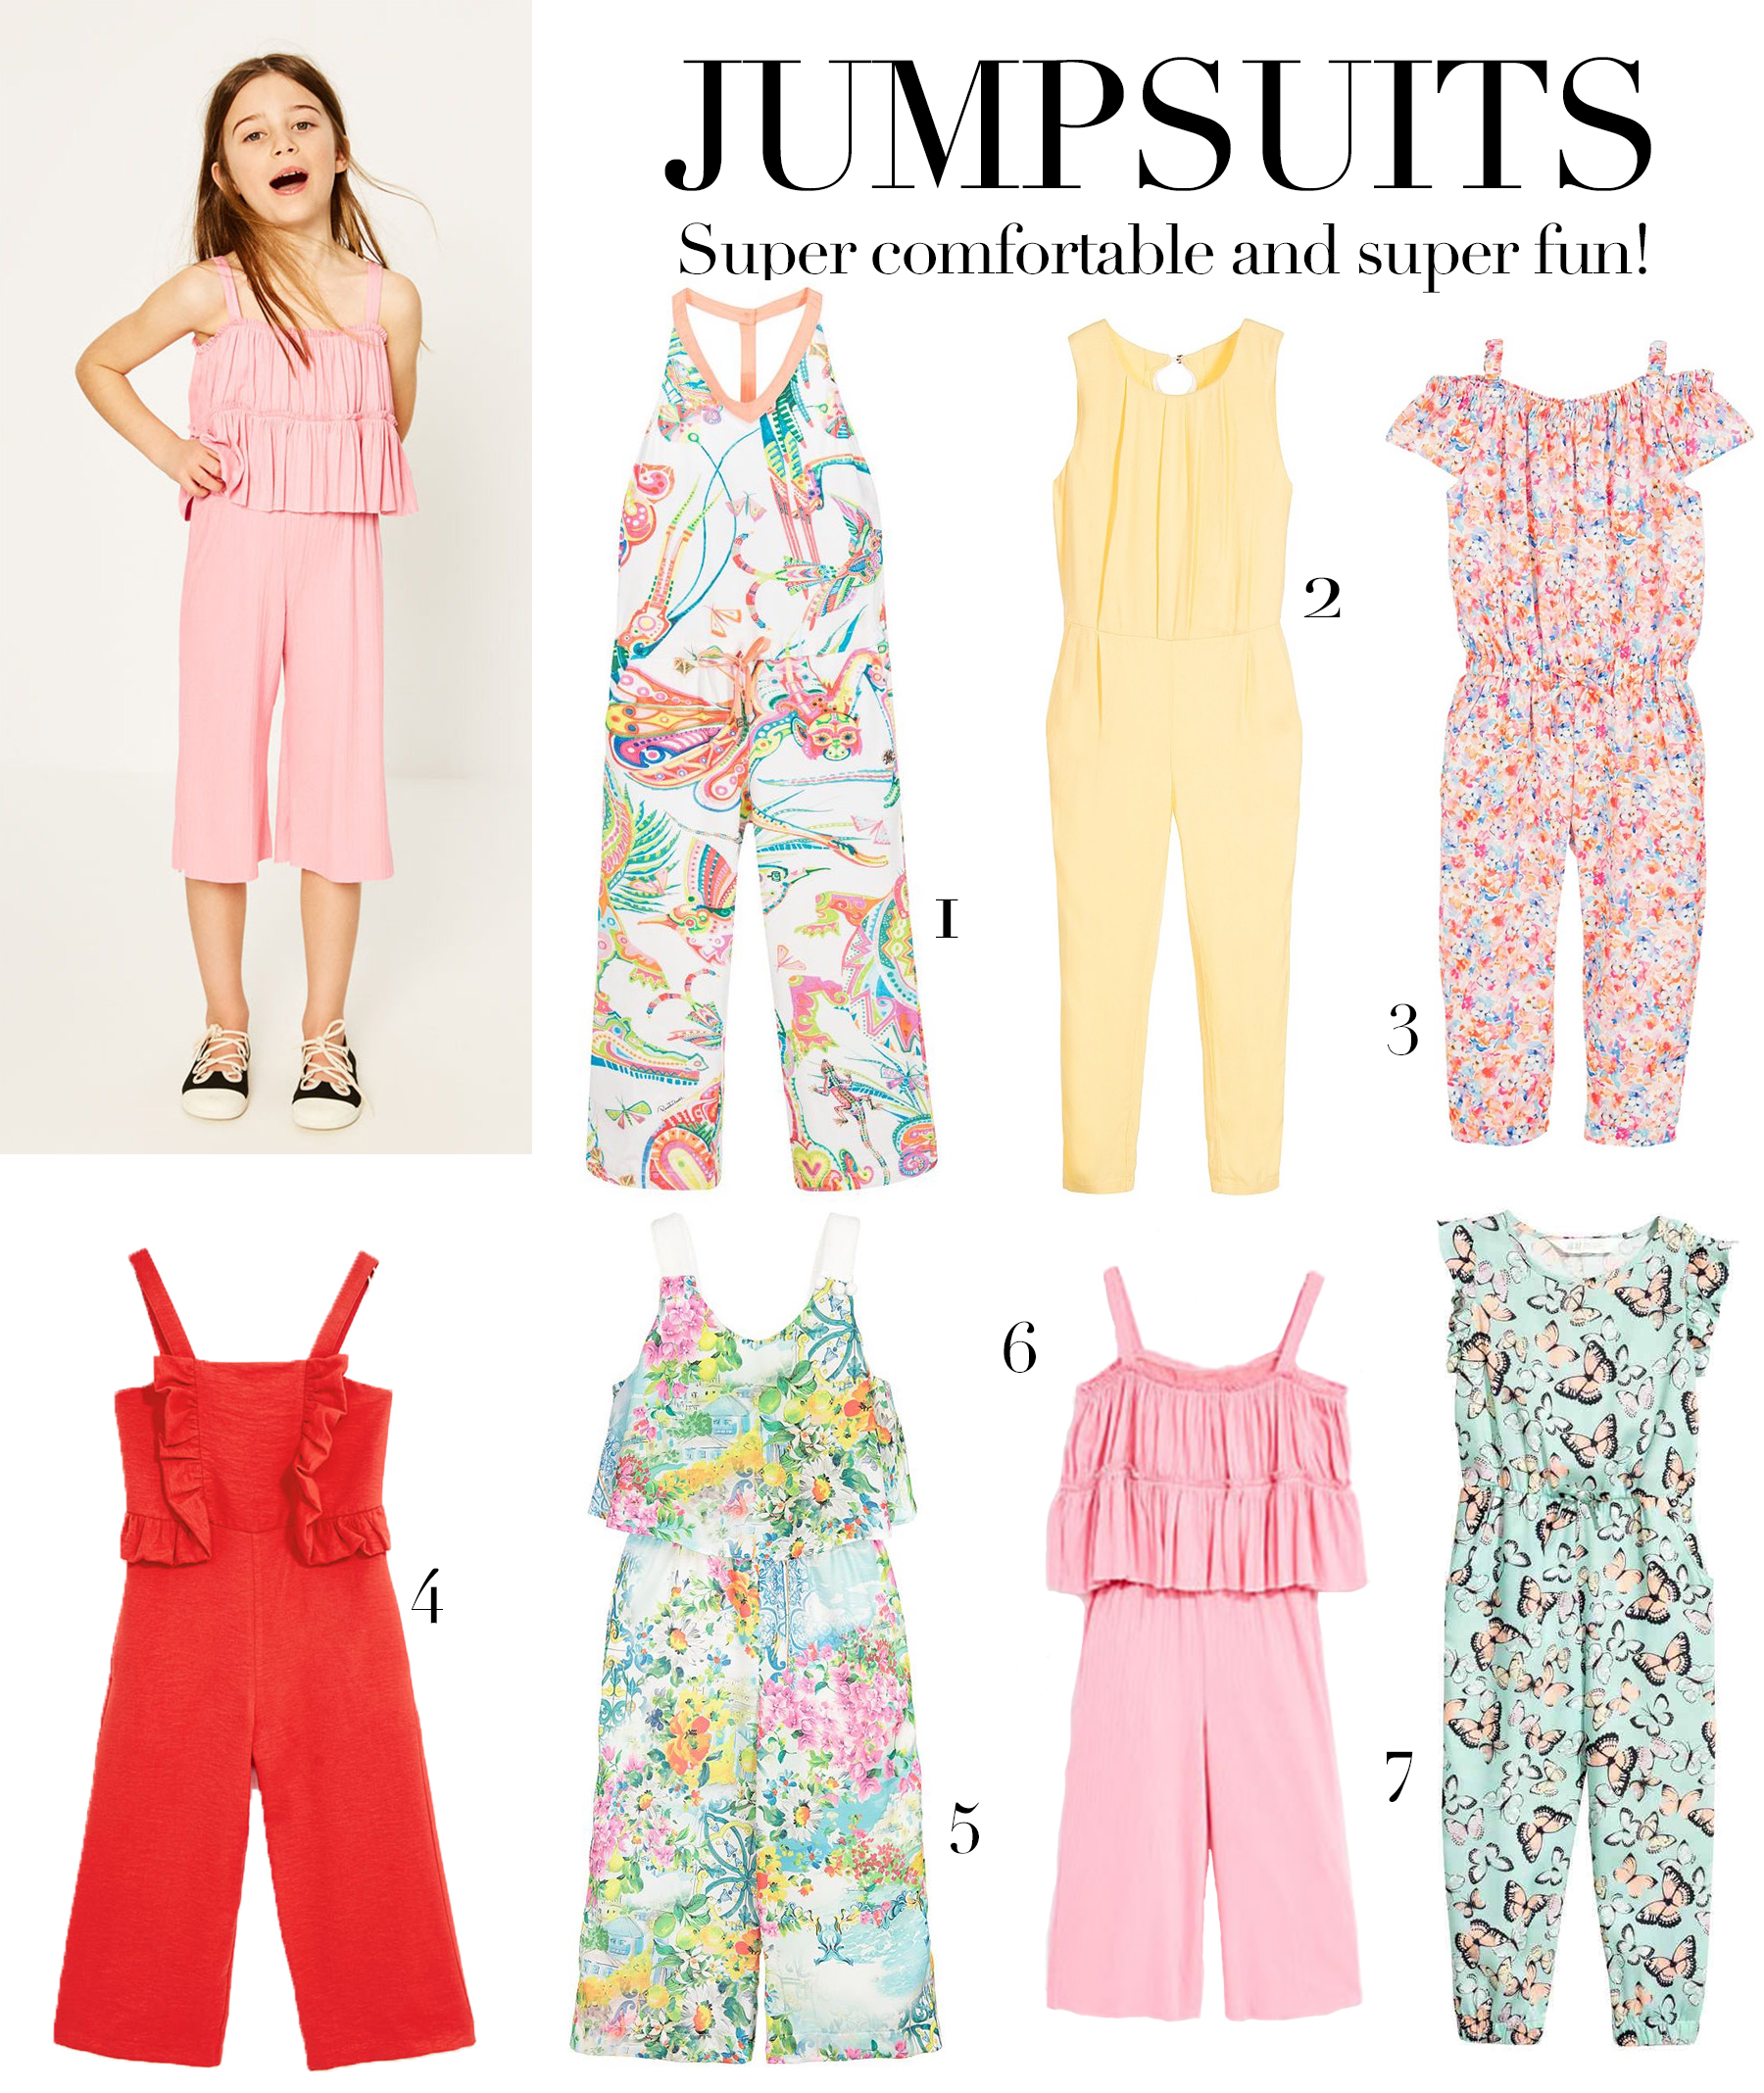 the-mom-jumpsuits-girls-kids-fashion